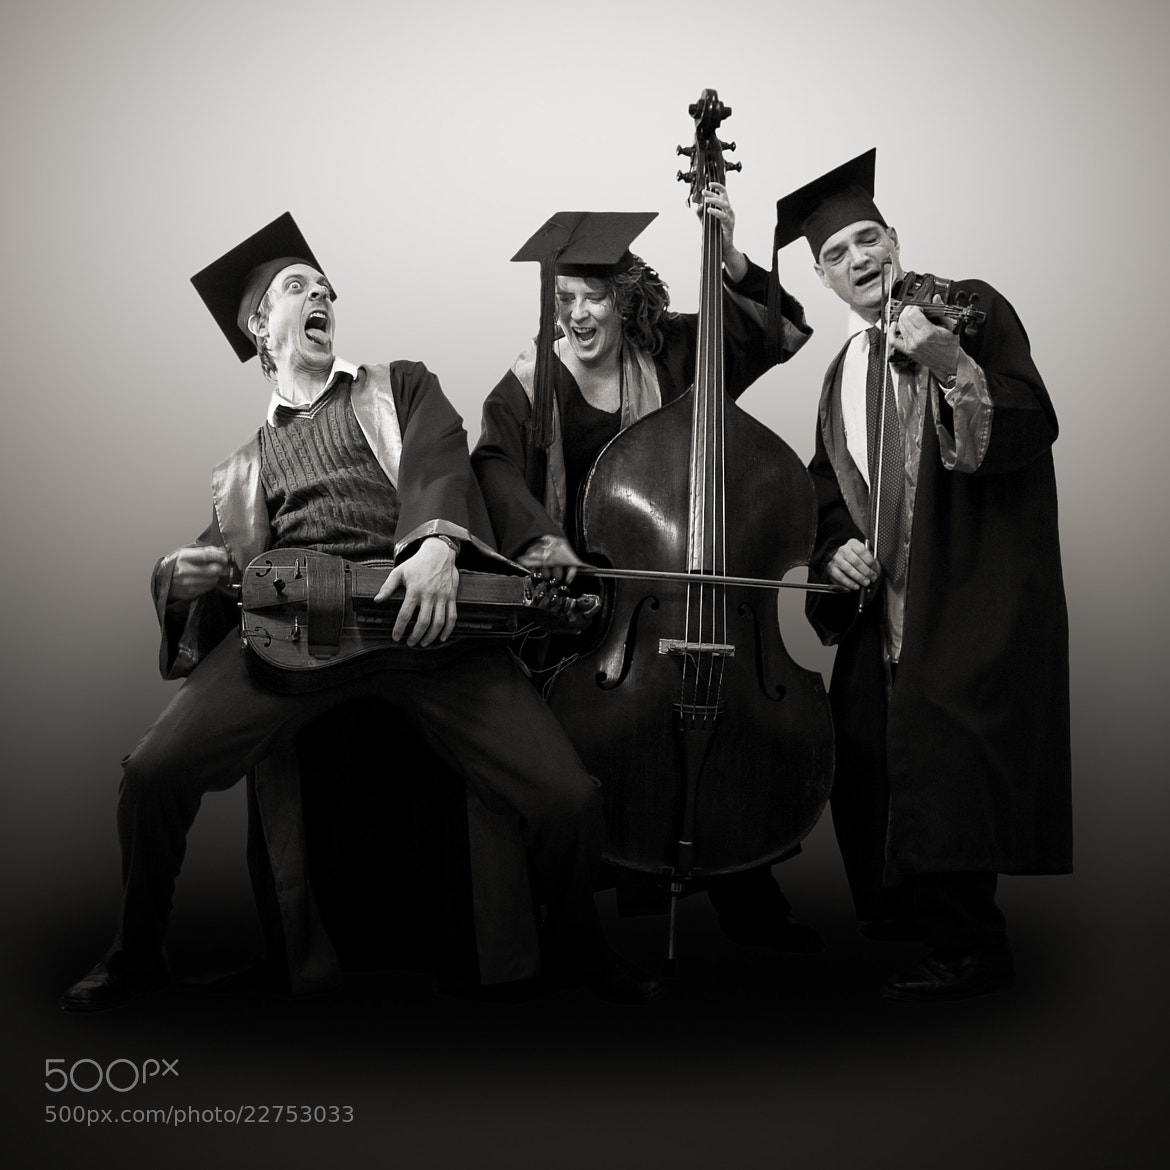 Photograph The Professers by Mathias Vejerslev on 500px